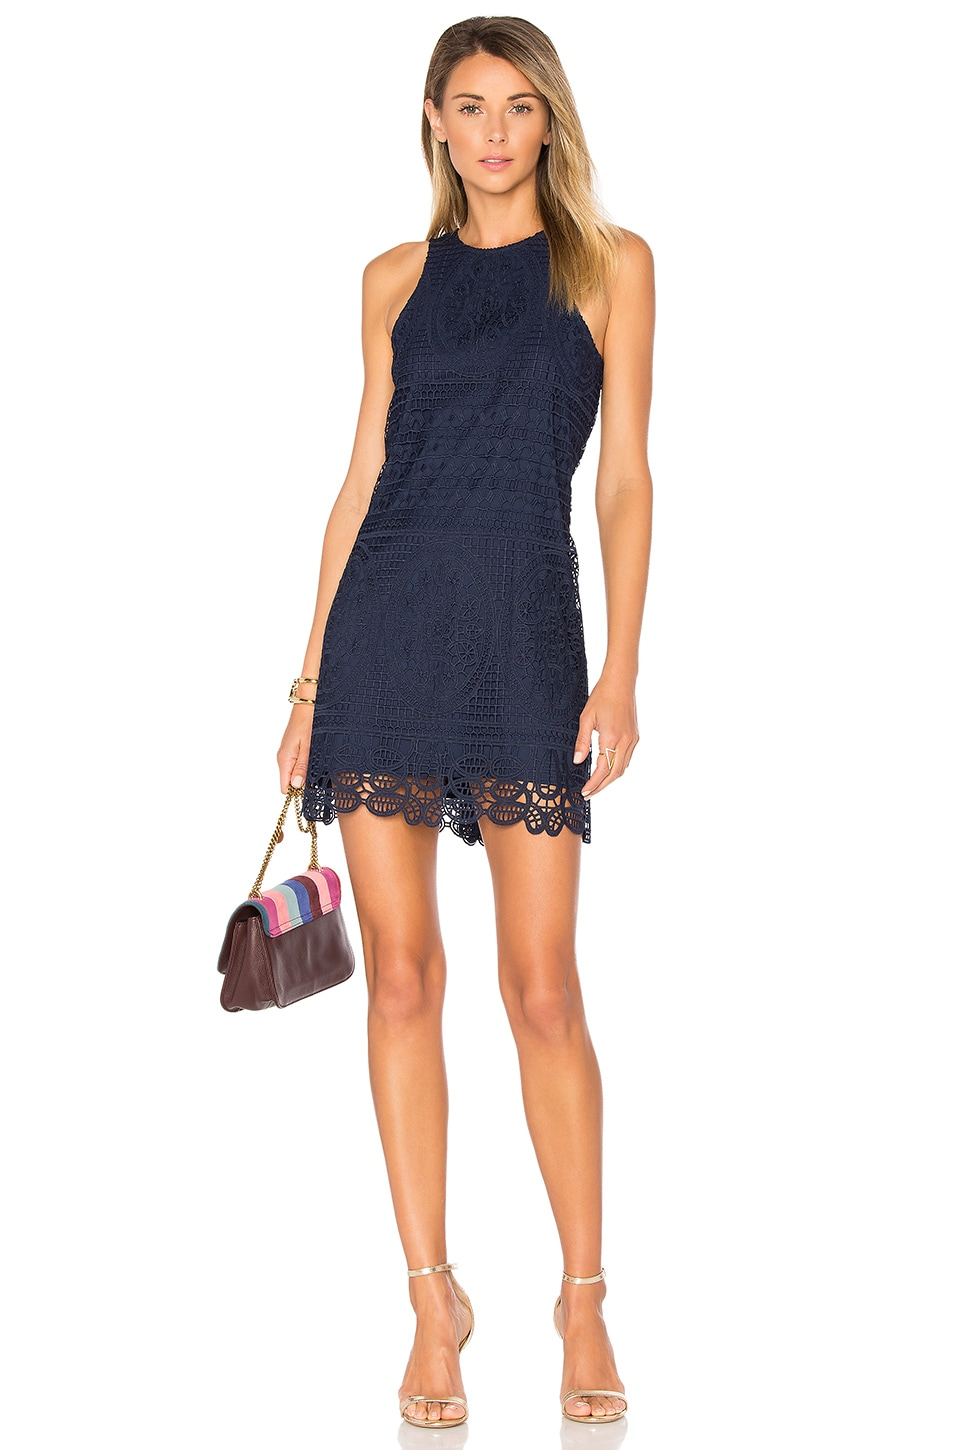 Lovers + Friends Caspian Dress in Navy